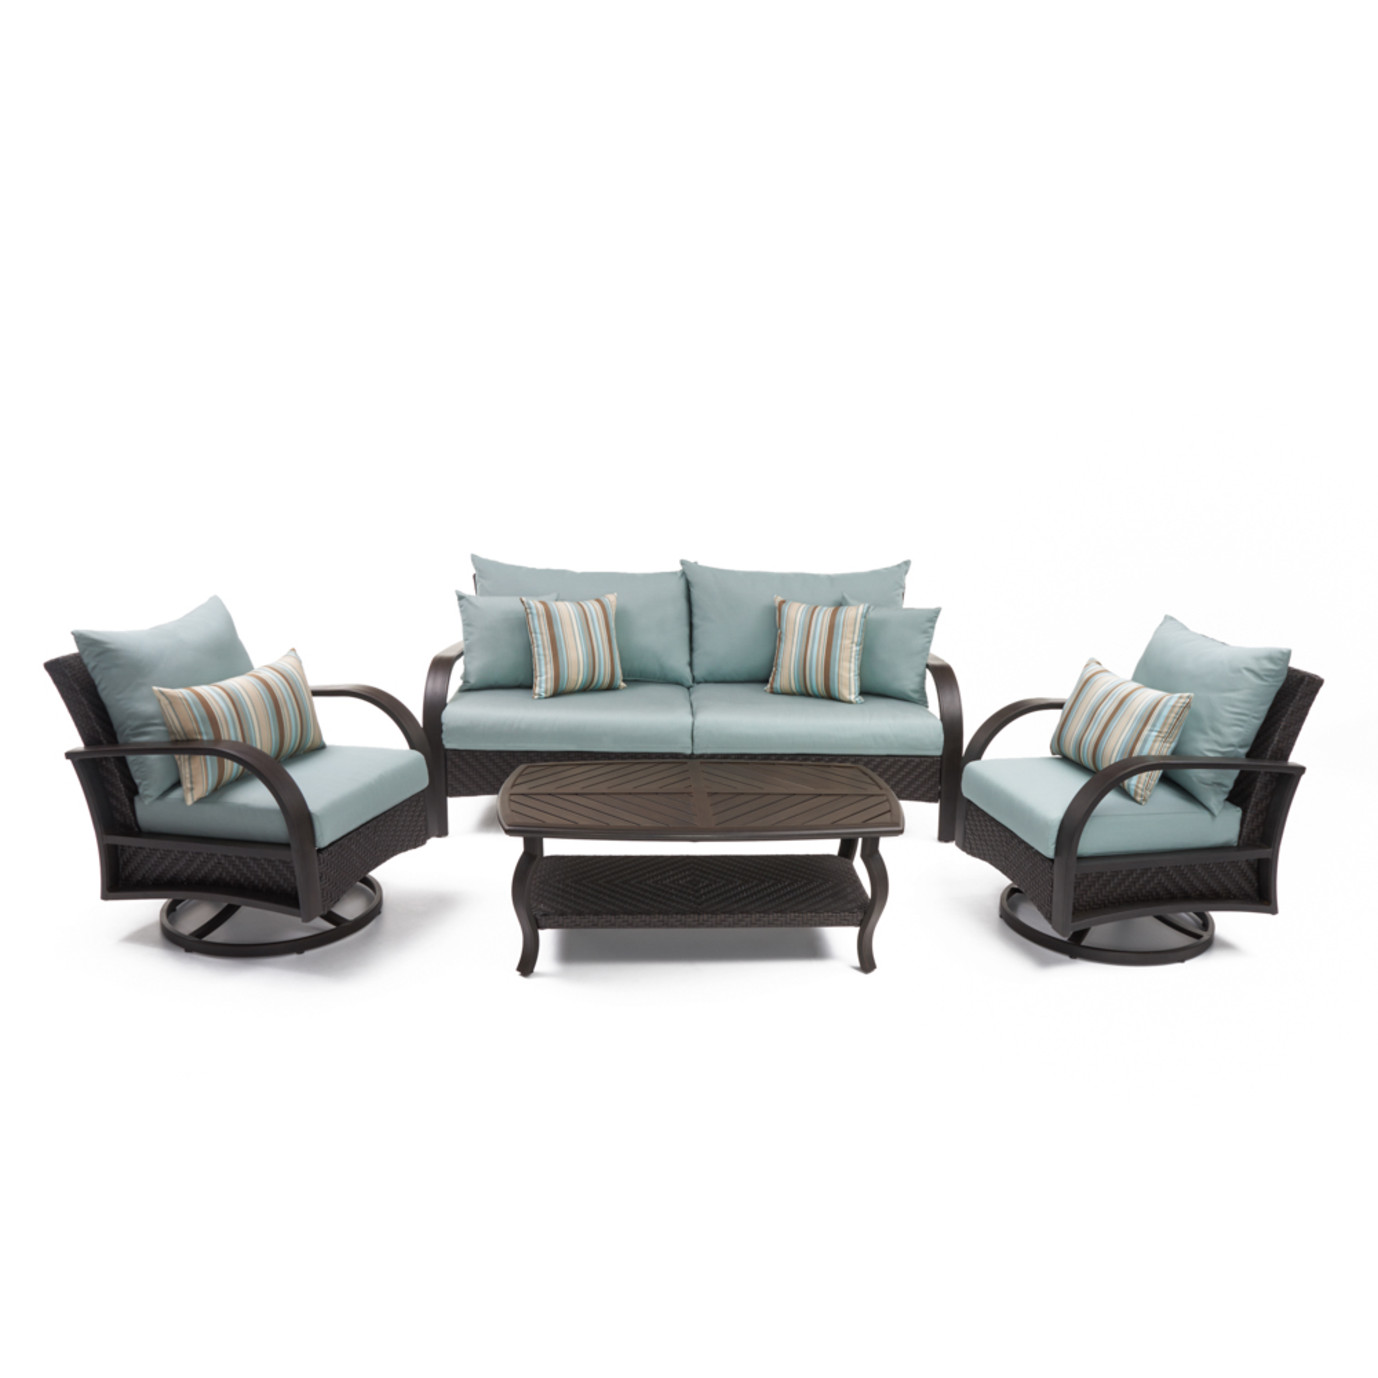 Barcelo™ 4pc Motion Club & Sofa Set - Bliss Blue